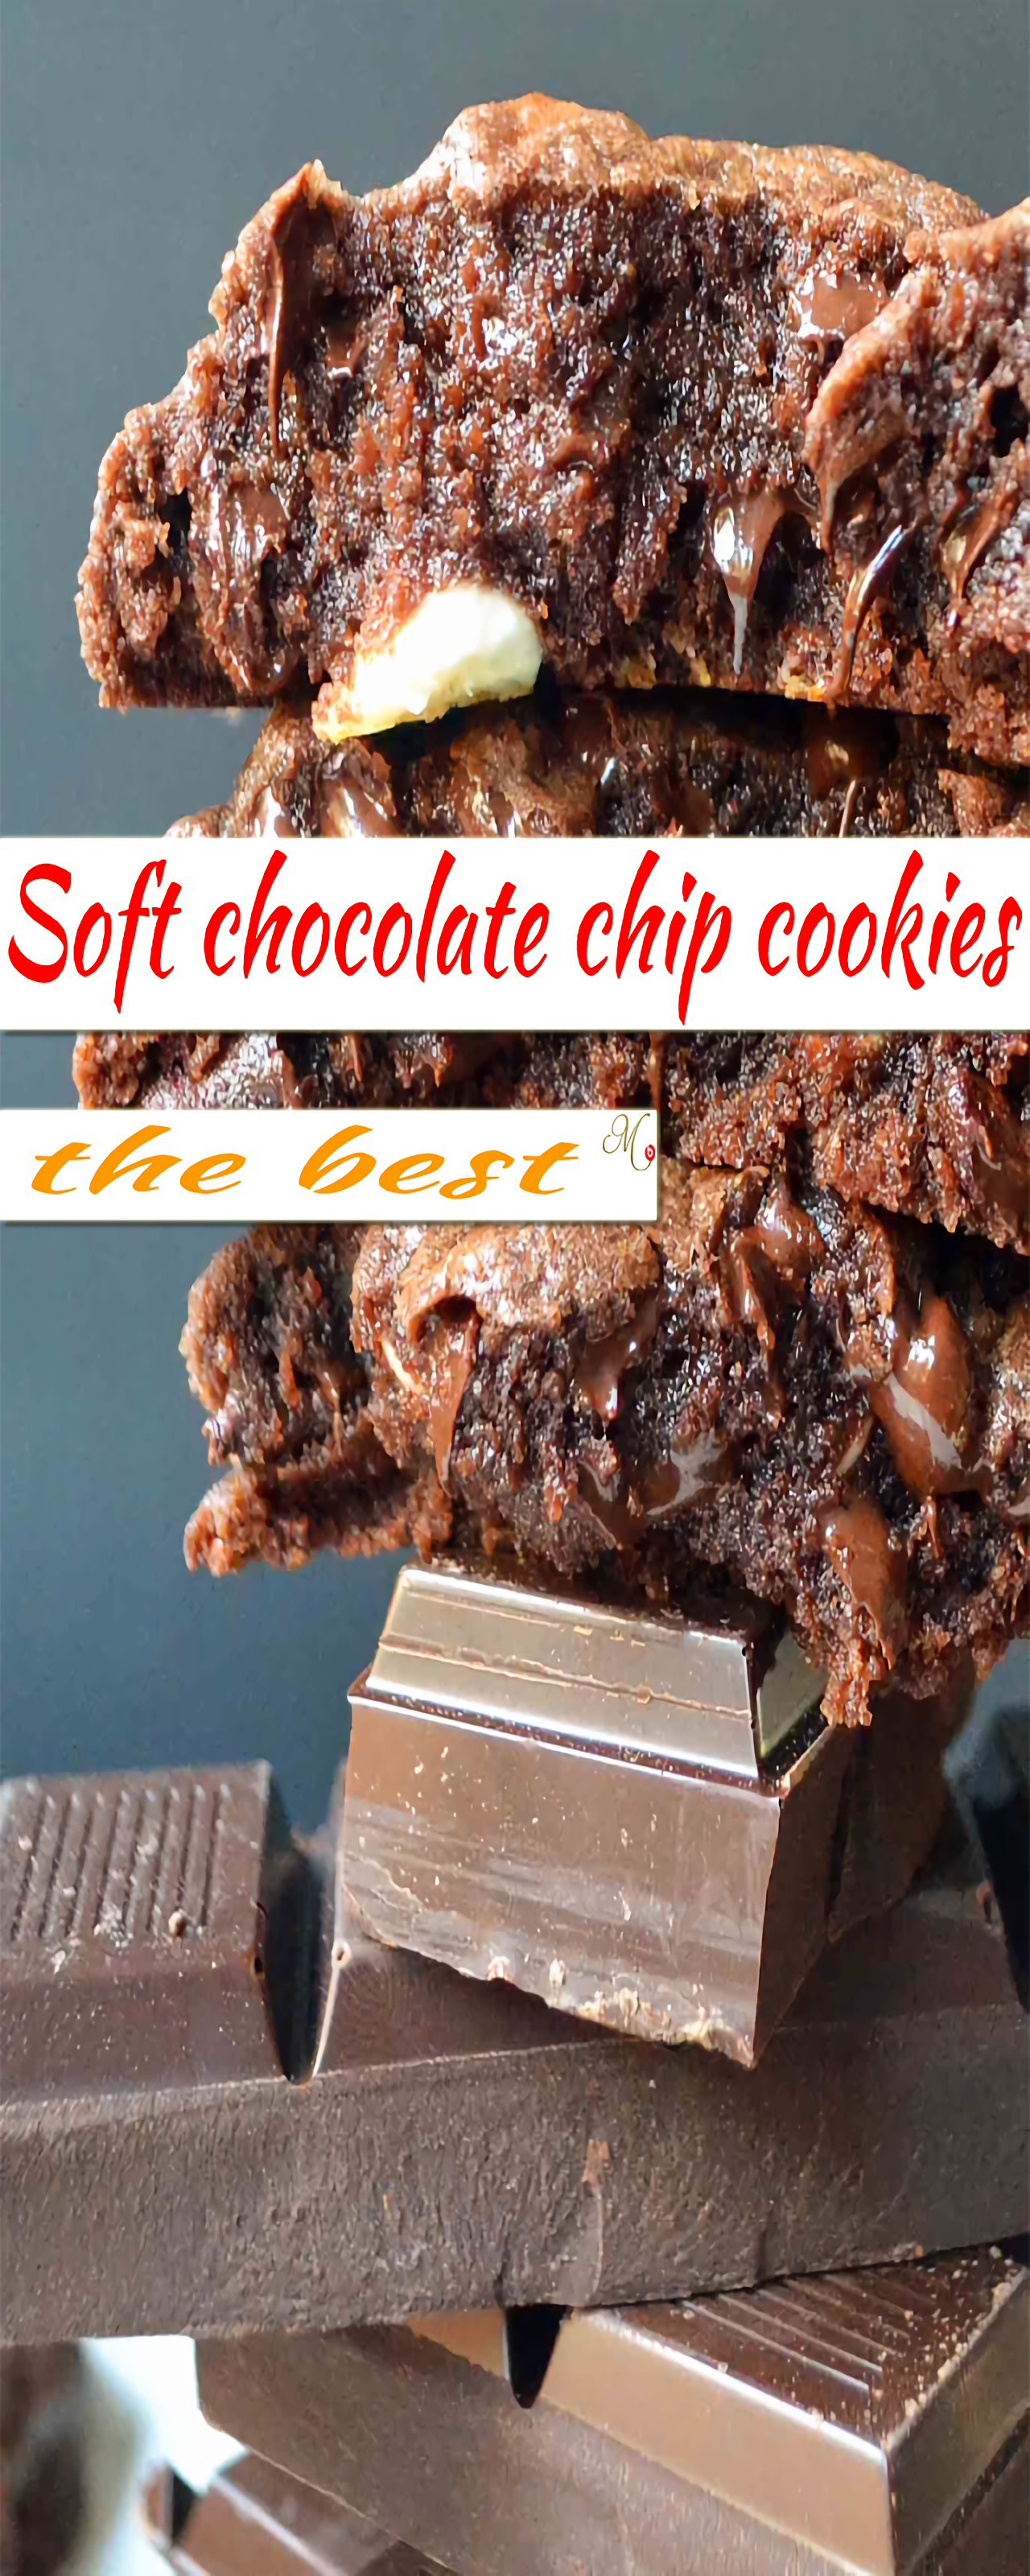 These Are The Best Comfortable Chocolate Chip Cookies No